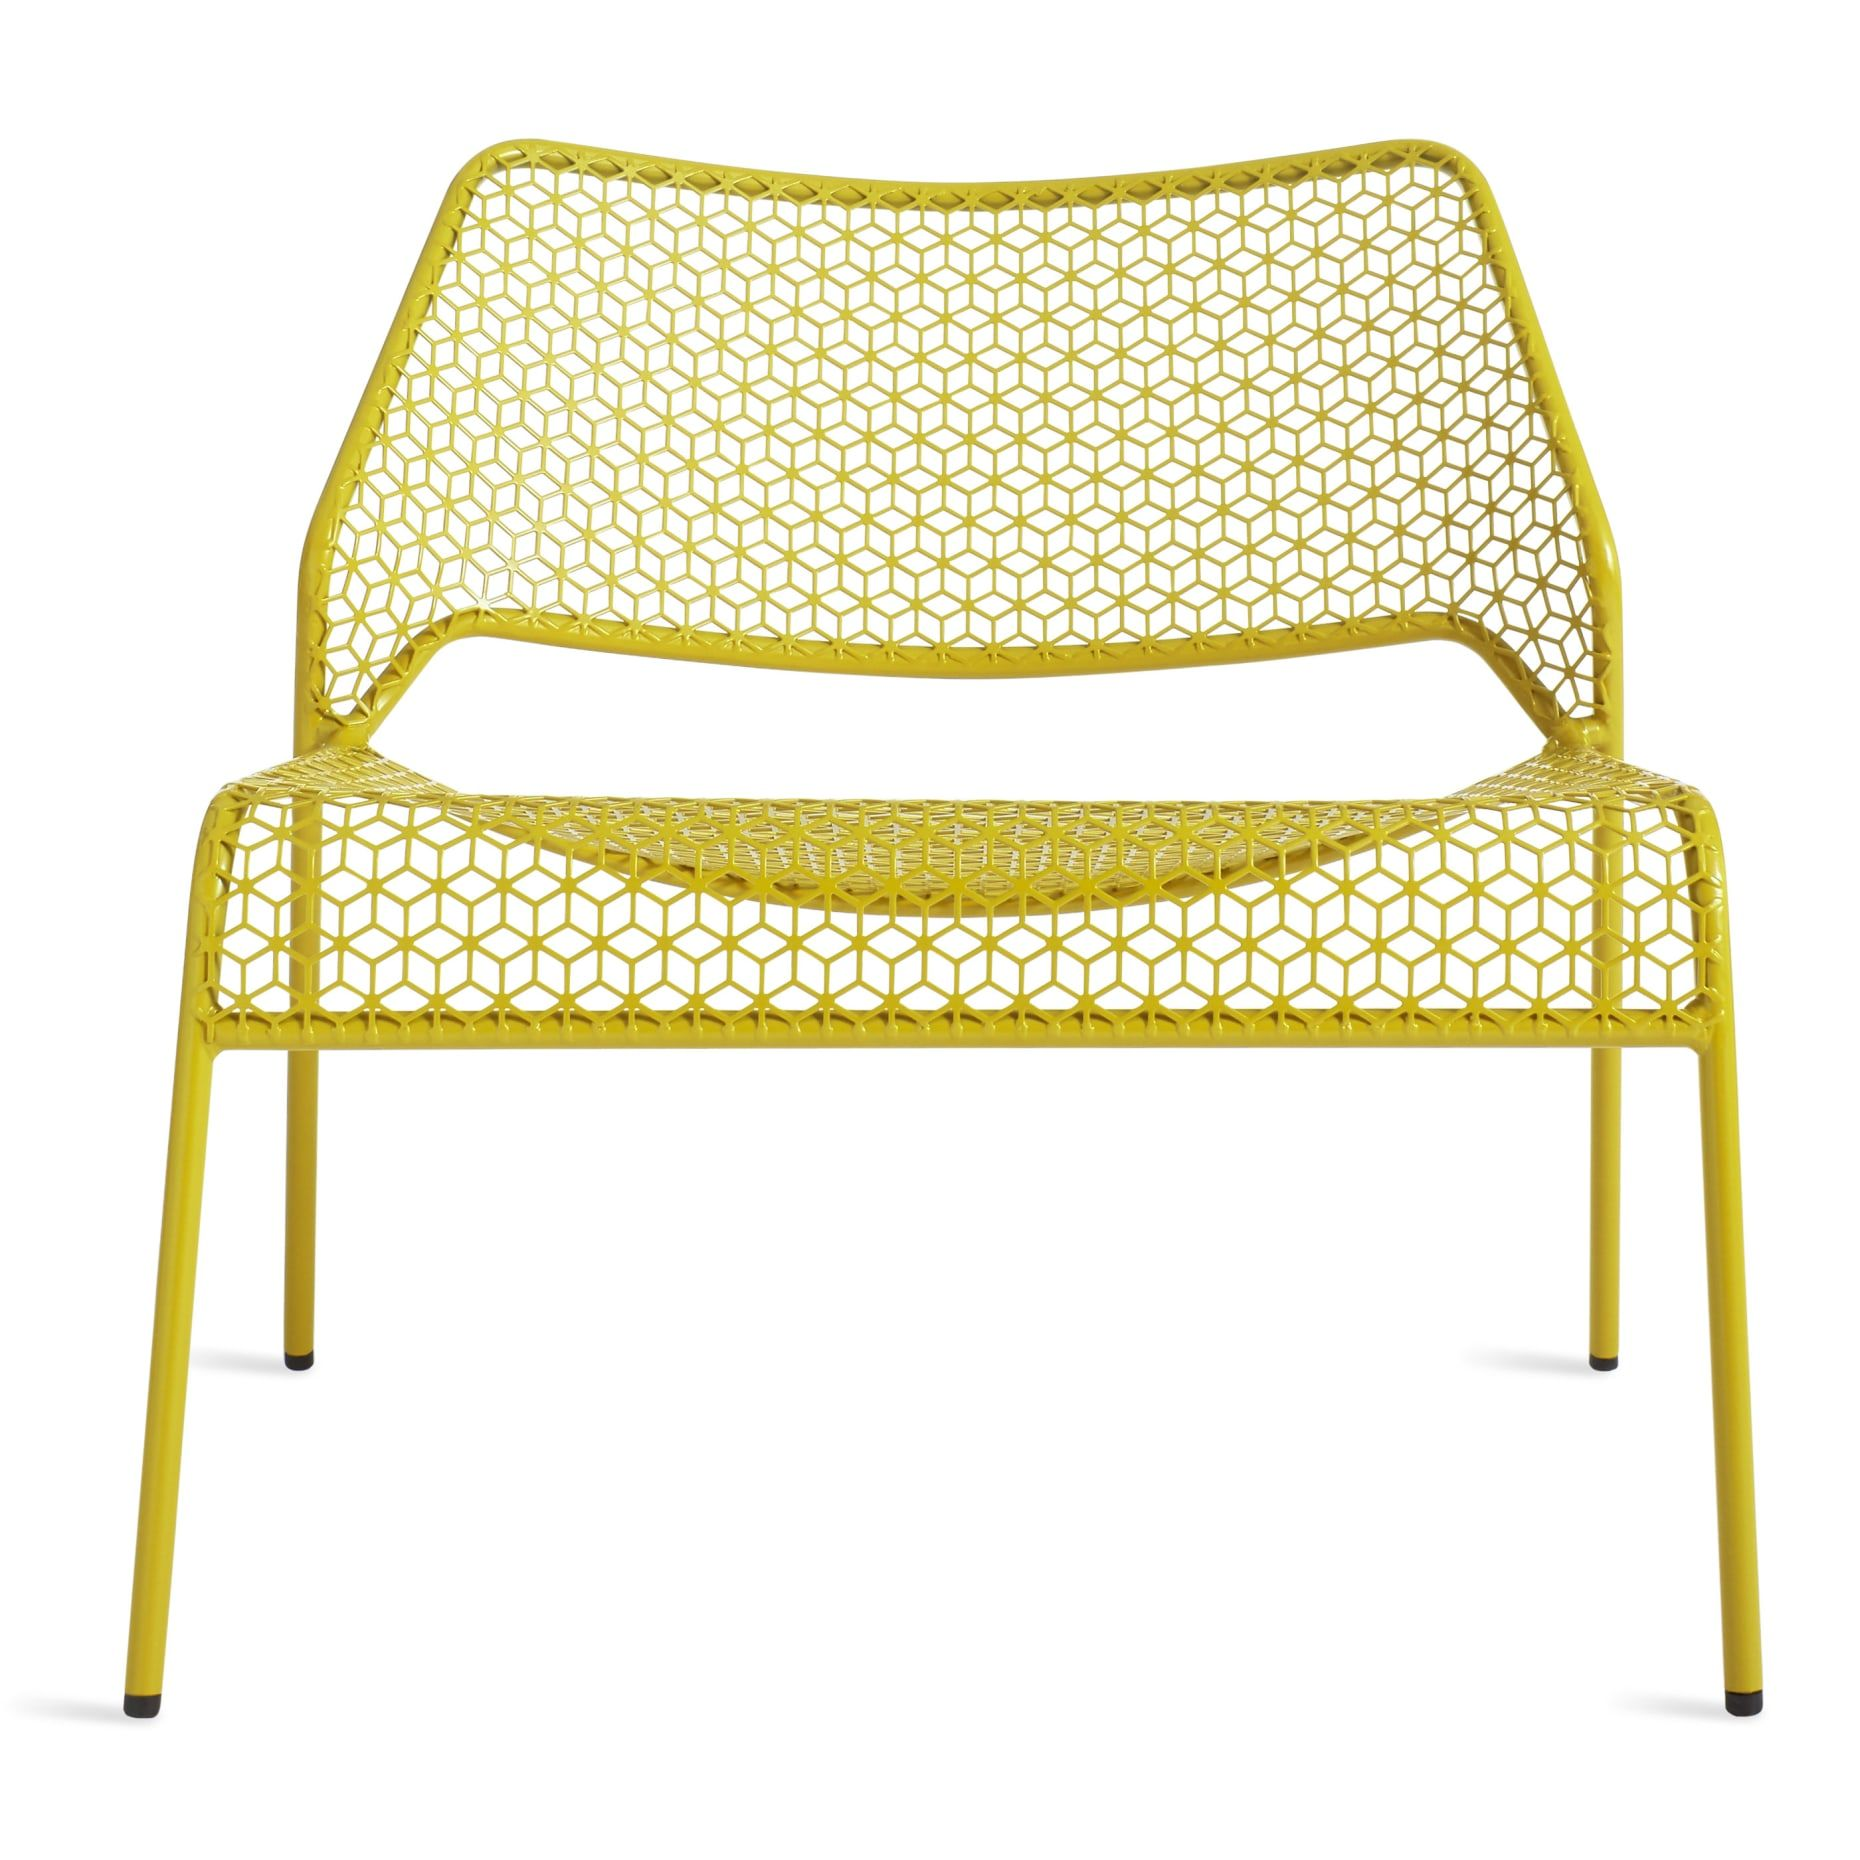 Hot Mesh Lounge Chair Lounge Chair Outdoor Metal Patio Chairs